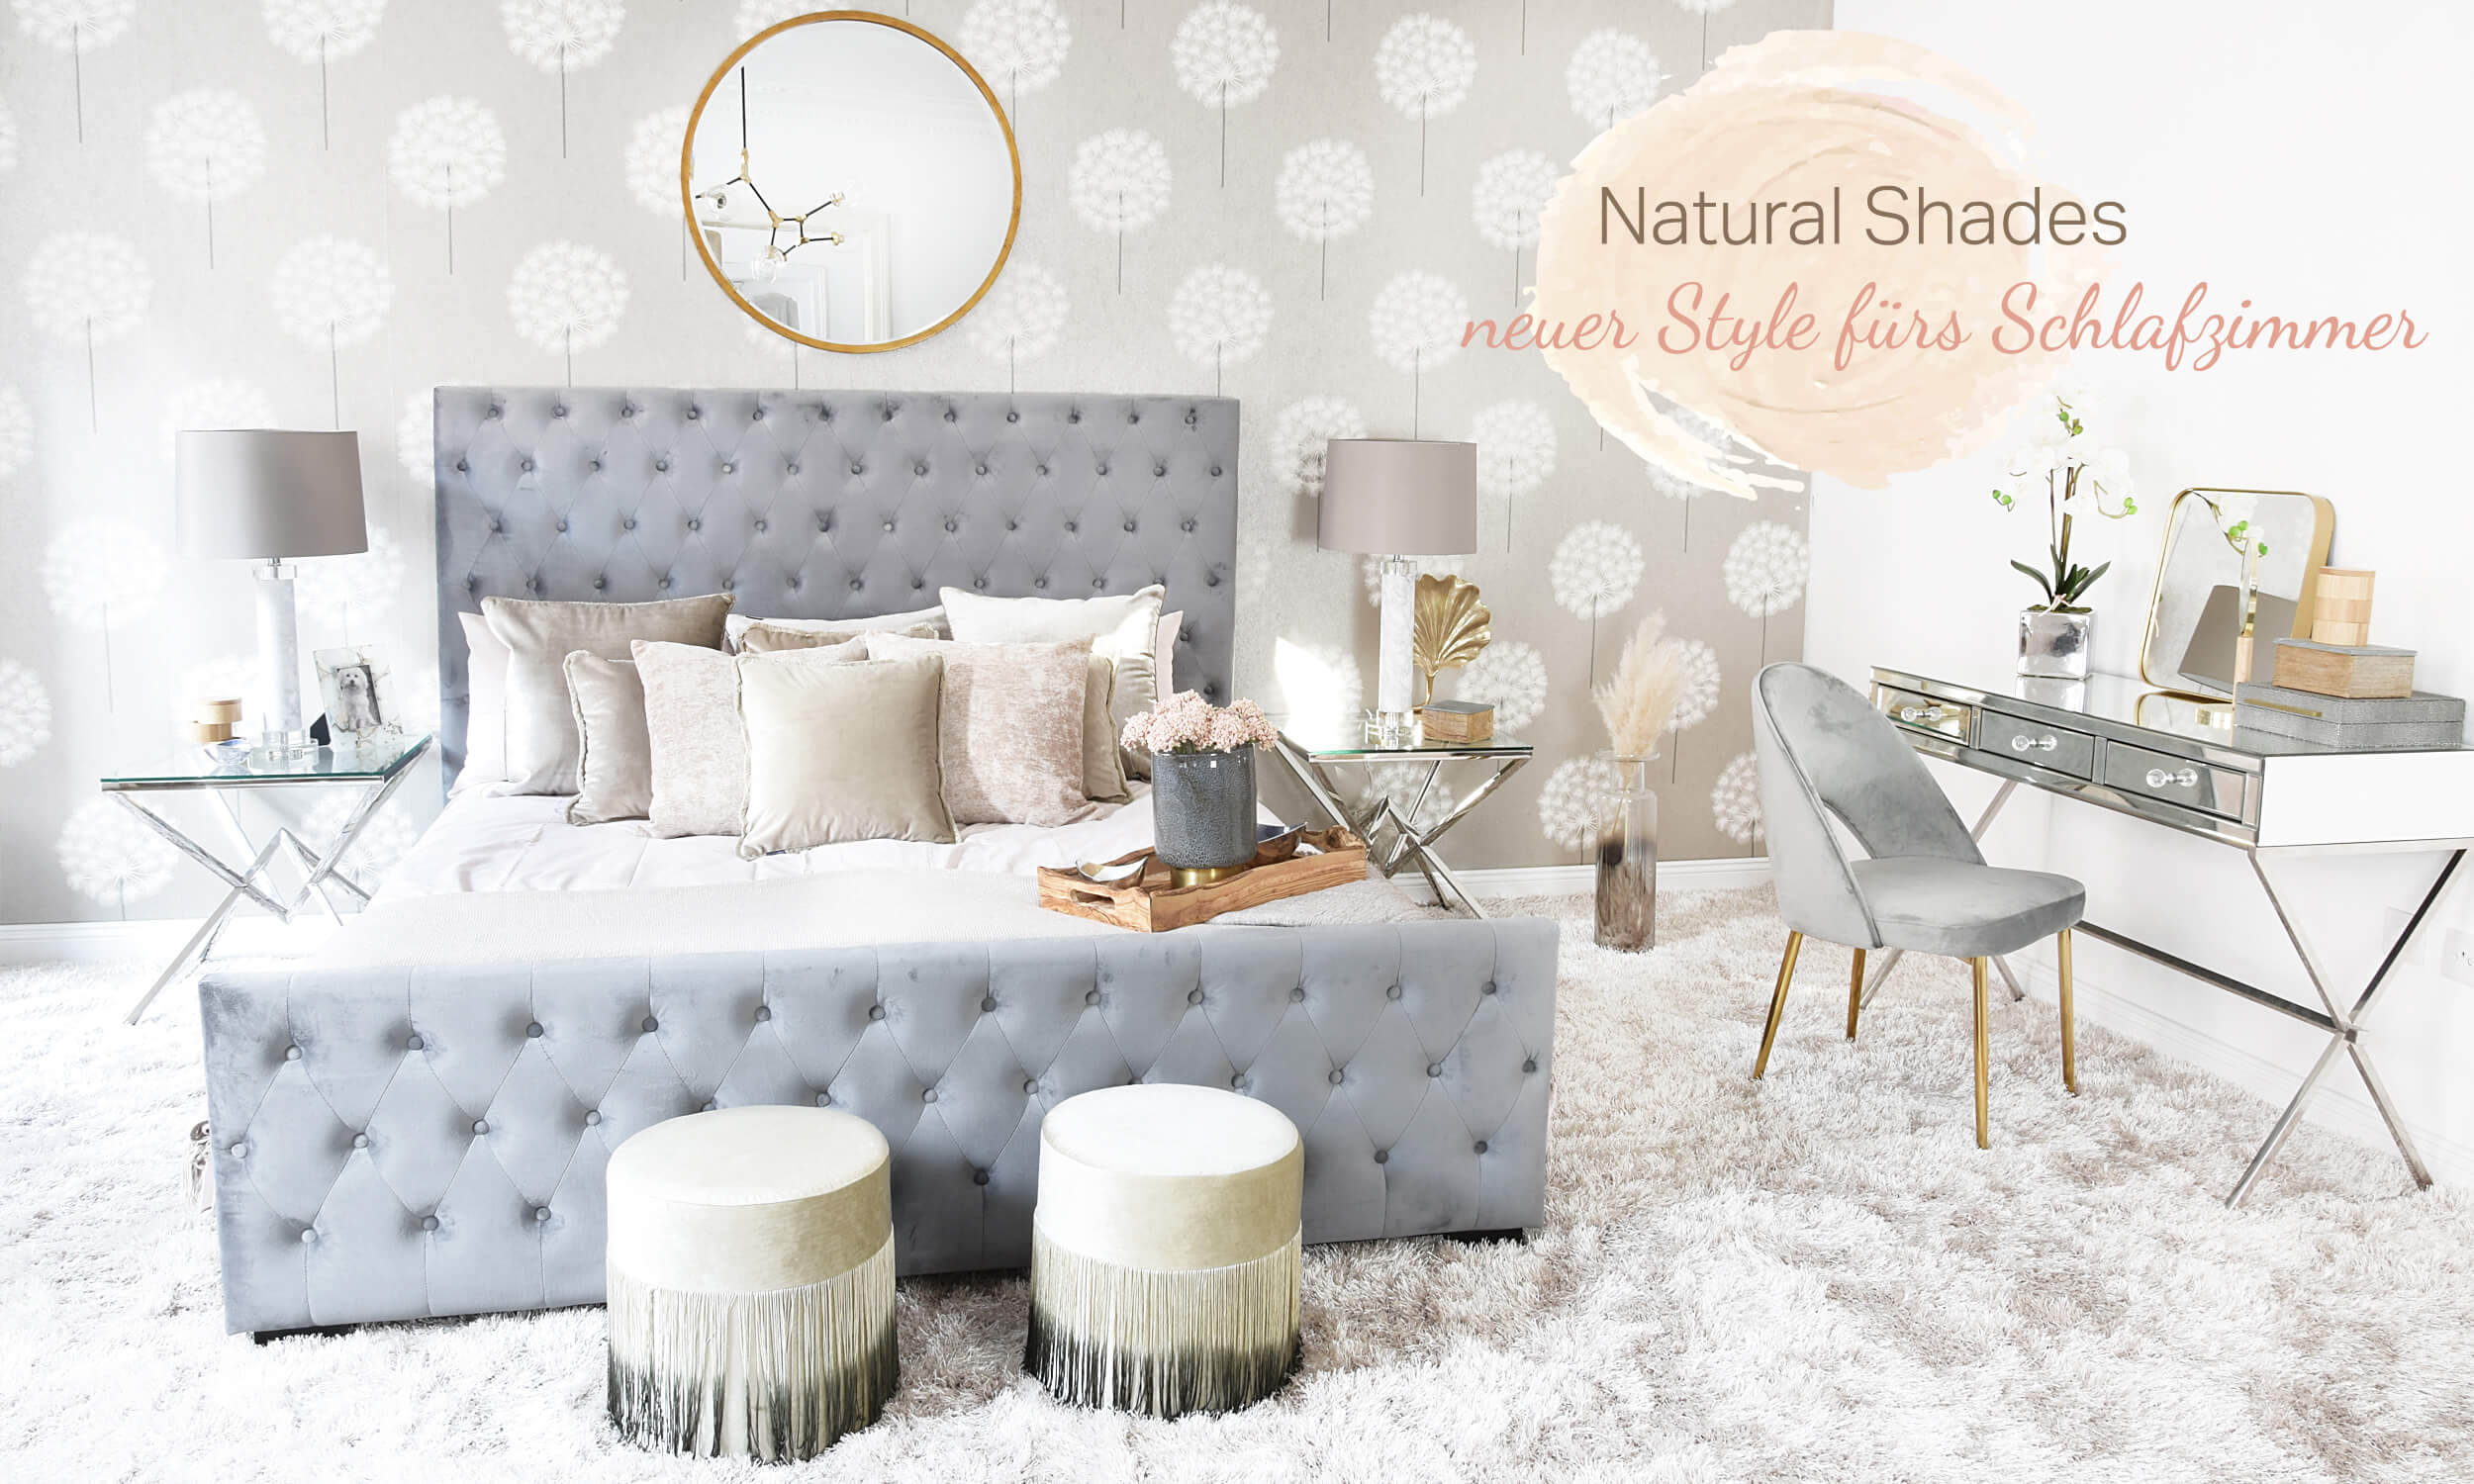 Natural Shades Bedroom - Schlafzimmer in Naturtönen